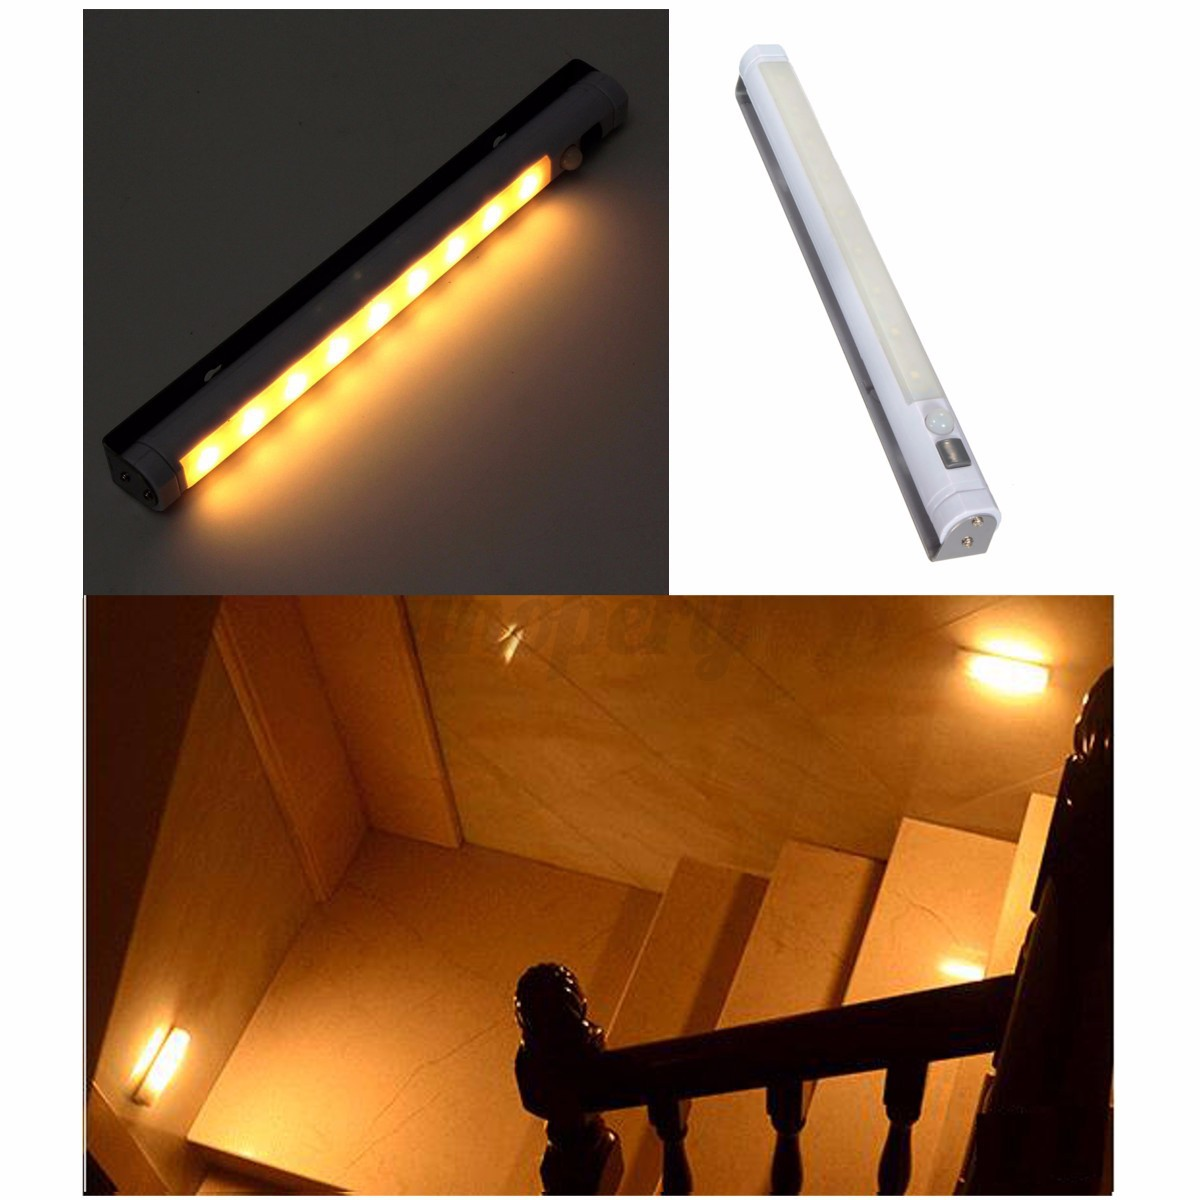 Lighting Basement Washroom Stairs: Wireless PIR LED Motion Sensor Infrared Night Light